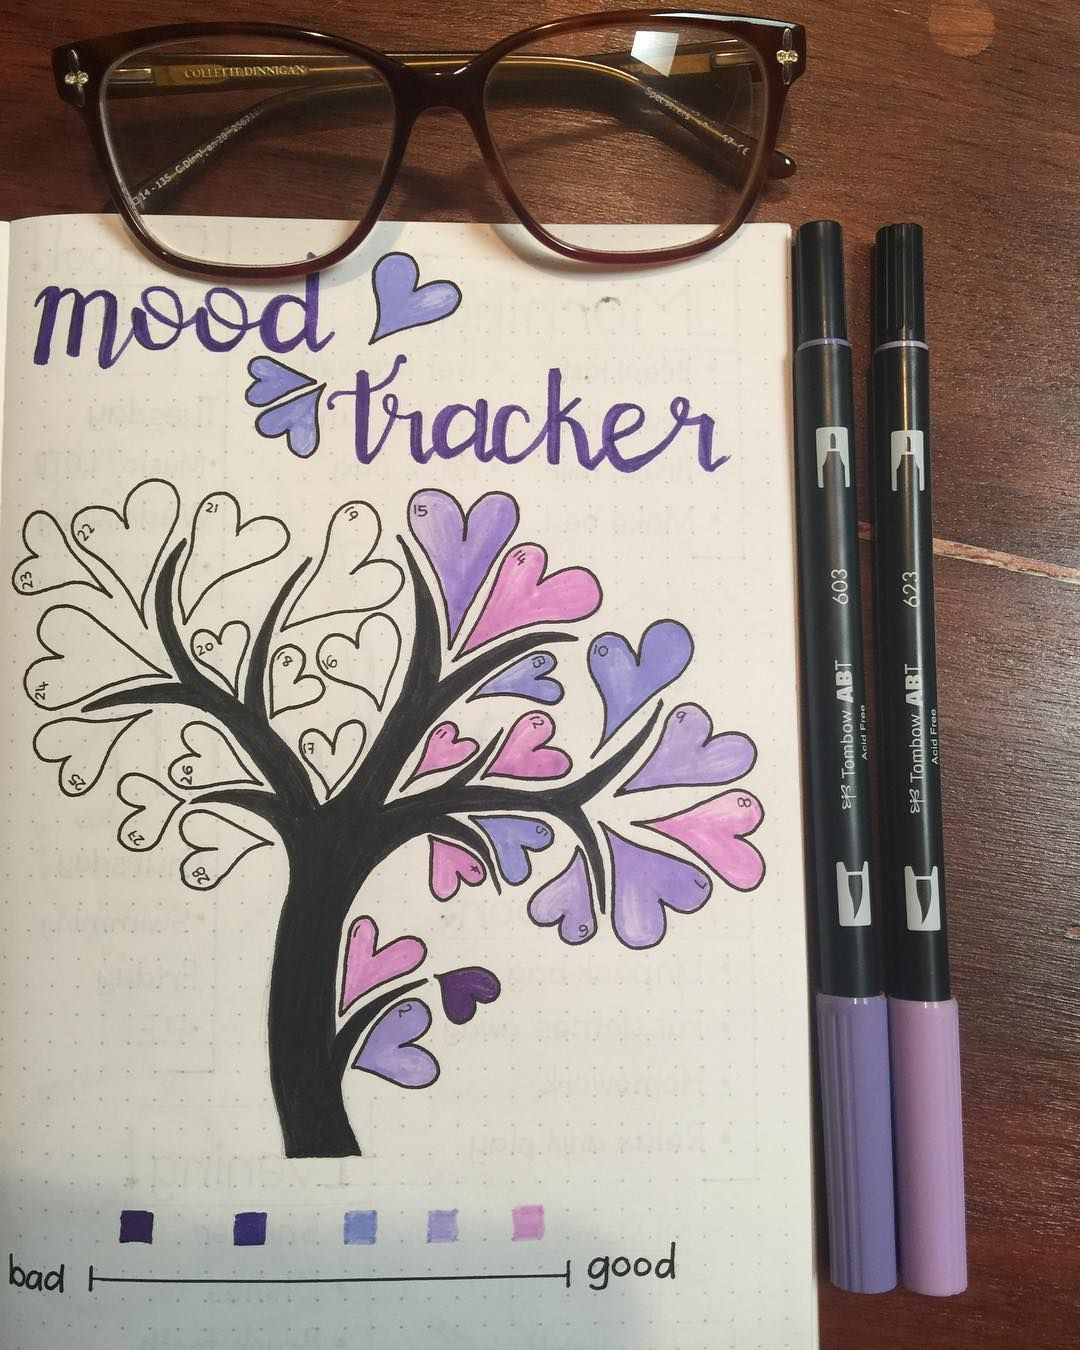 Bullet journal monthly mood tracker tree with heart shaped leaves